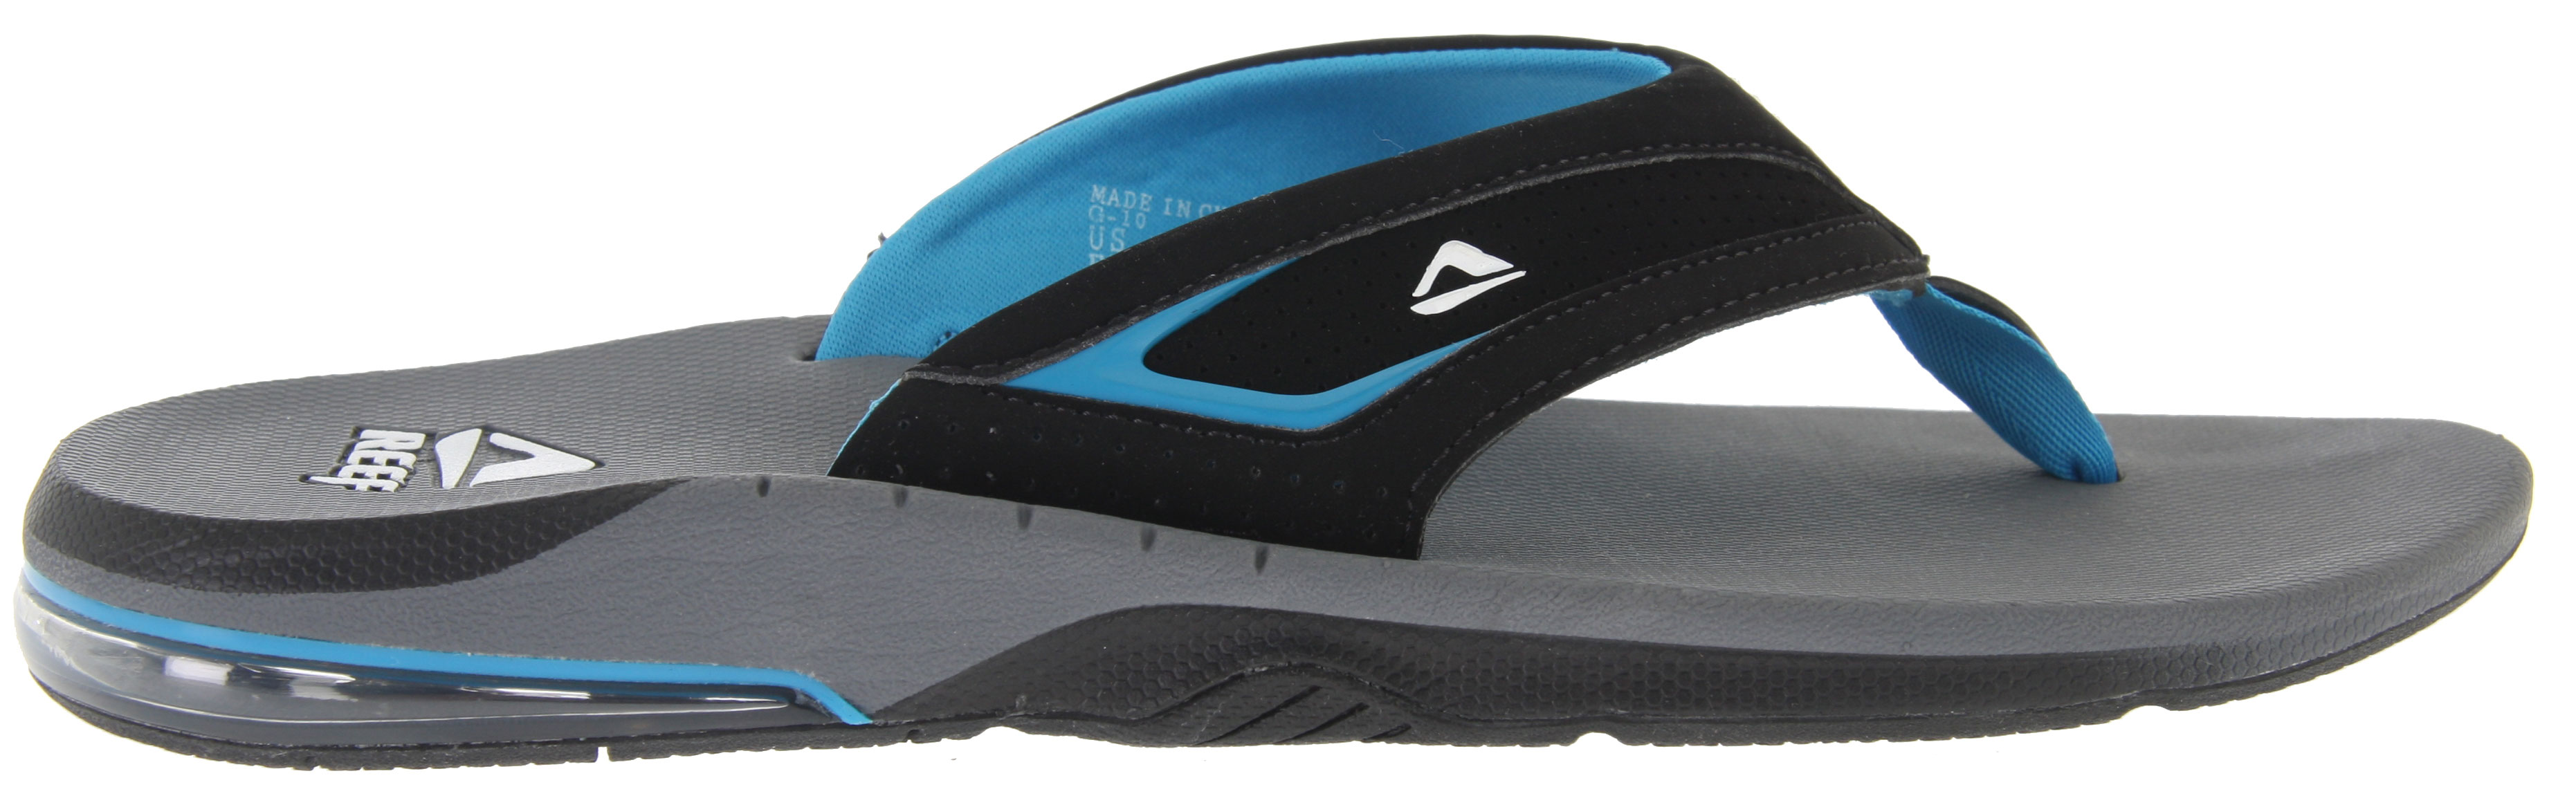 Surf Not all sandals are created equally. Poorly made sandals can cause blisters, pain, and provide little support. For a pair of sandals that are not only great for your feet, but stylish and fun, Reef Springtide Sandals are the way to go. These sandals are made with synthetic nubuck, so water won't be an issue. They also have soft padding for added comfort, so you can keep going without foot pain slowing you down. The footbed is contoured and provides anatomical arch support, and the heels have enclosed airbags and soft polyurethane to prevent rubbing, blisters, and pain. Don't let ill-fitting sandals stop your fun on the beach, choose Reef Springtide Sandals and you'll be comfortable all day.Key Features of the Reef Springtide Sandals: Comfortable Water Friendly Synthetic Nubuck Upper Soft Textile Lining With Soft Padding For Comfort Contoured Compression Molded Eva Footbed With Anatomical Arch Support Full 360 Degree Low Profile Heel Airbag Enclosed In Soft Polyurethane - $41.95